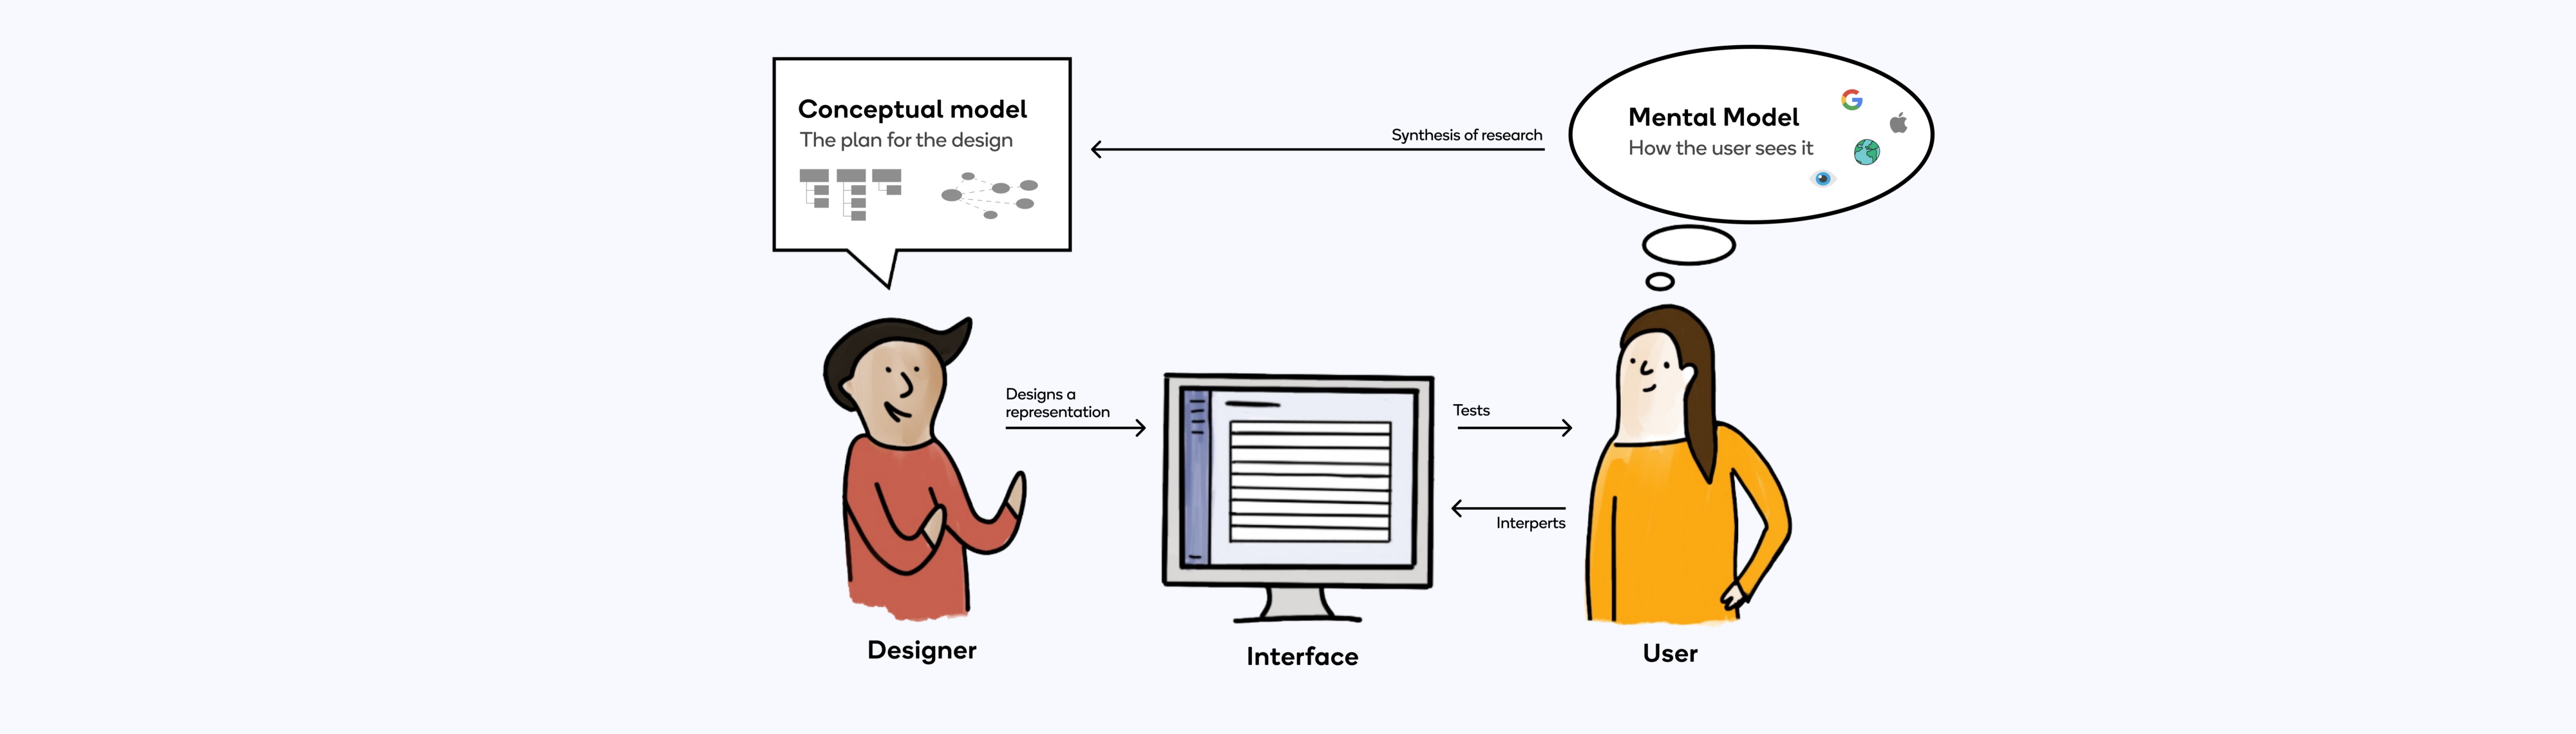 Understanding Mental And Conceptual Models In Product Design By Alana Brajdic Ux Collective